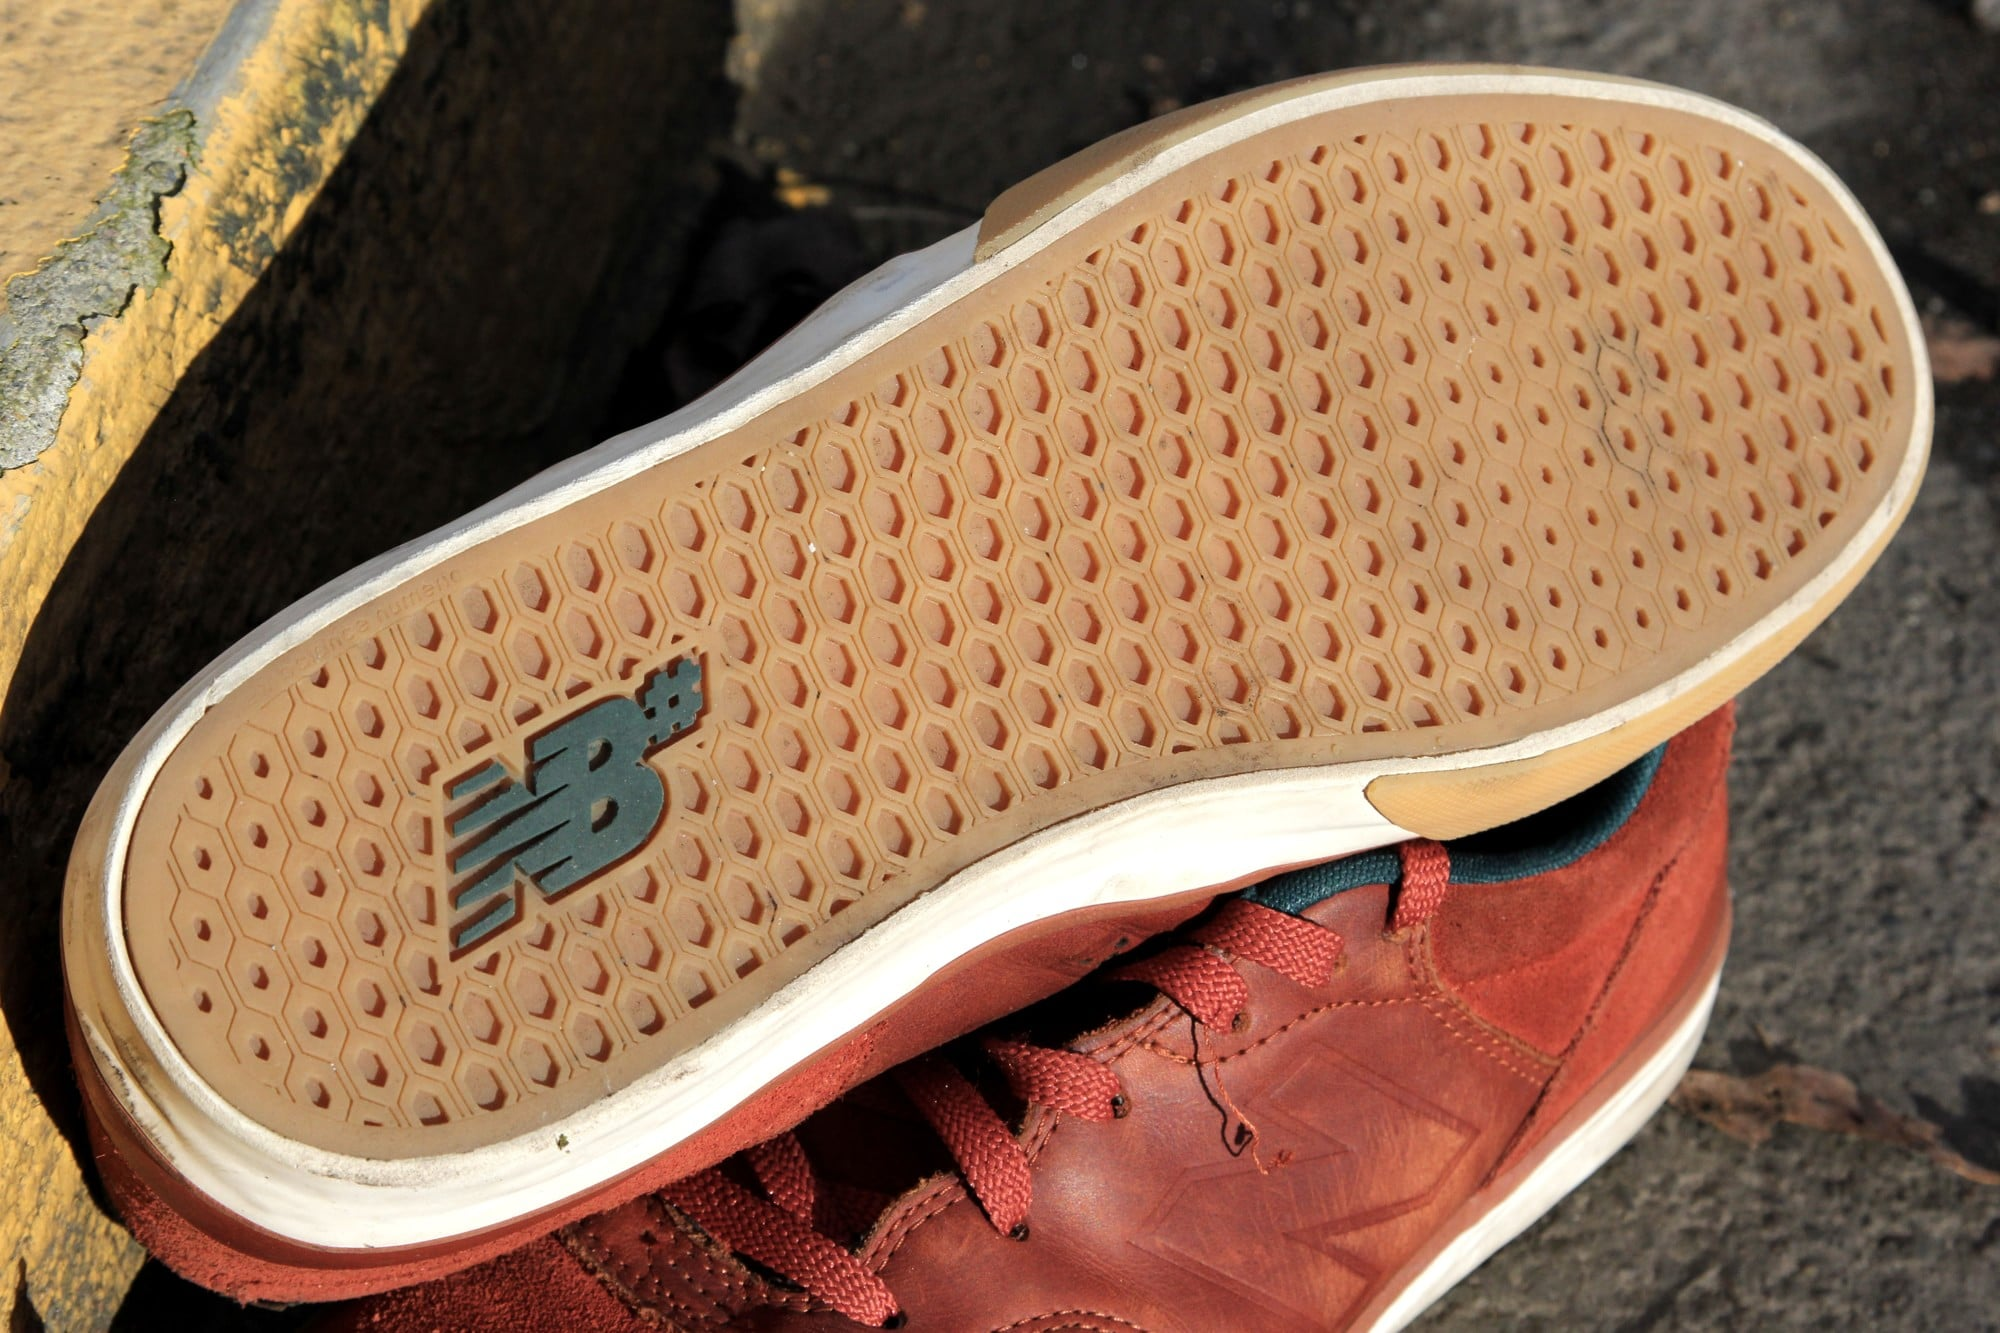 eefd97365889f New Balance Arto 358 Skate Shoes Wear Test Review | Tactics